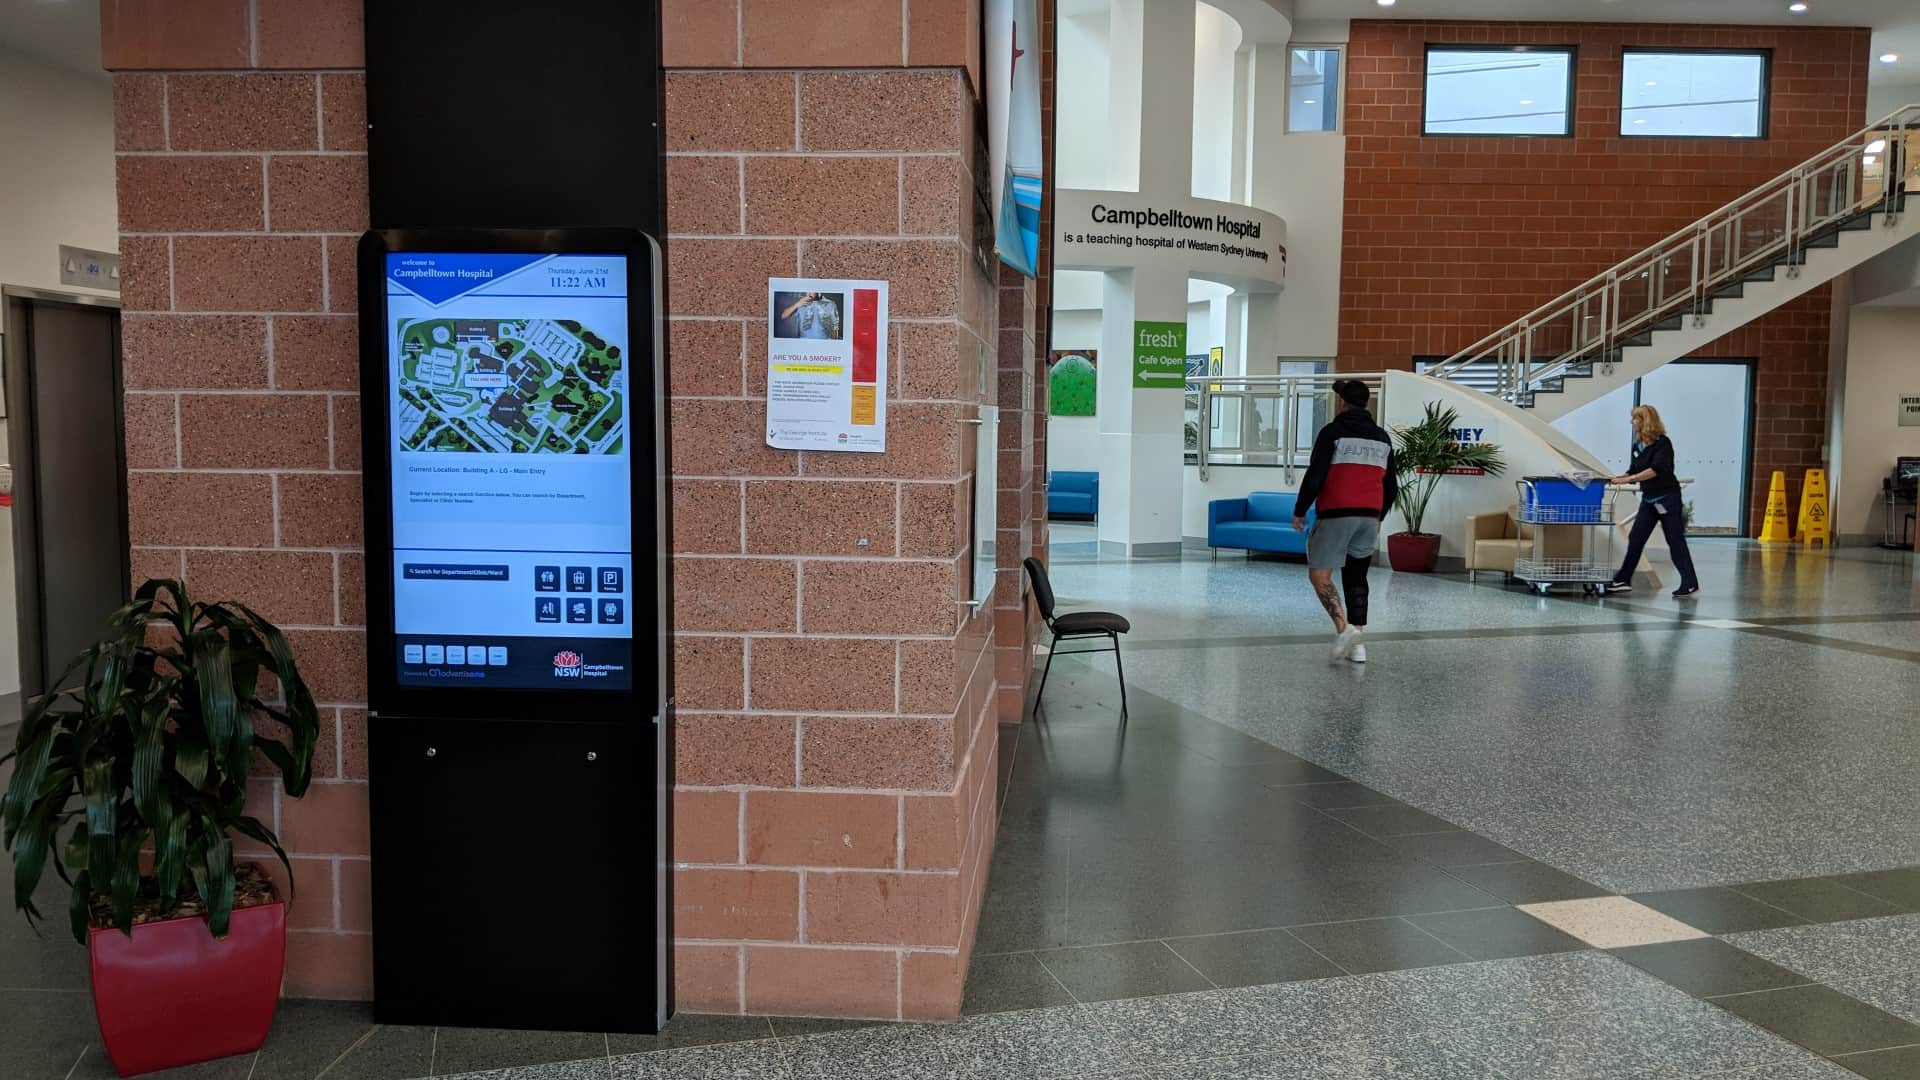 Digital Wayfinding – Campbelltown Hospital